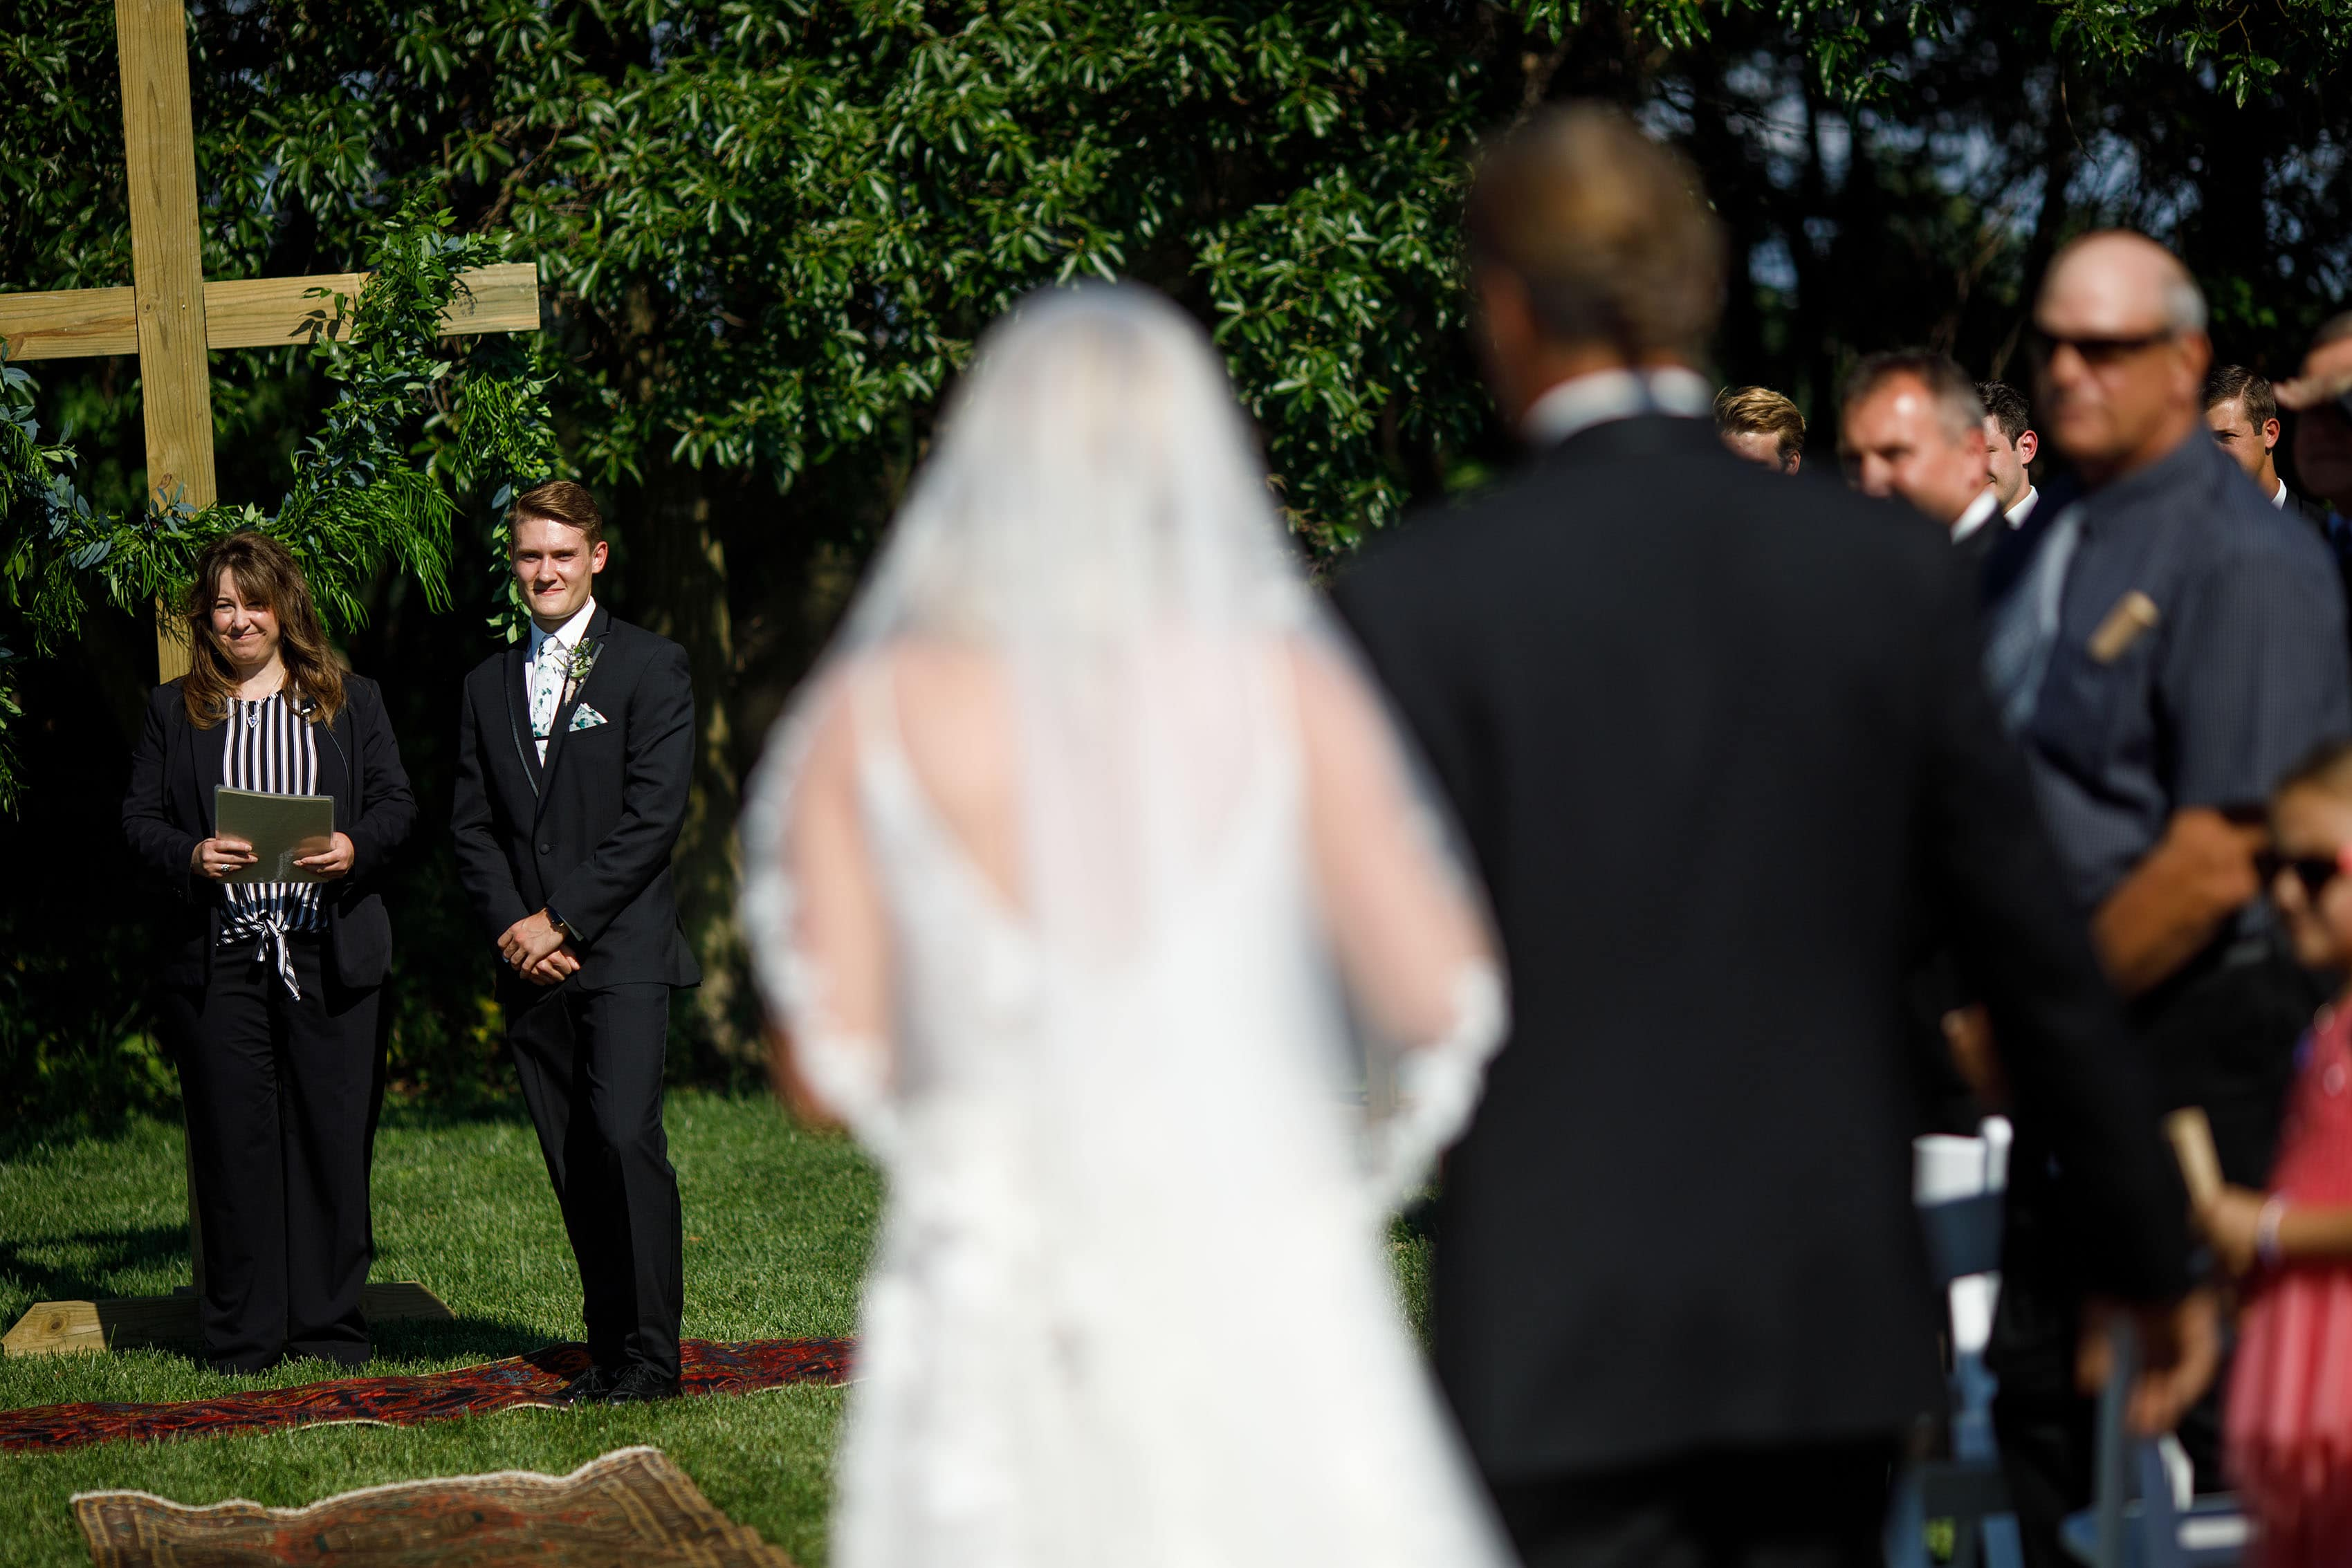 Jacob sees Sienna for the first time on their wedding day at Emerson Fields